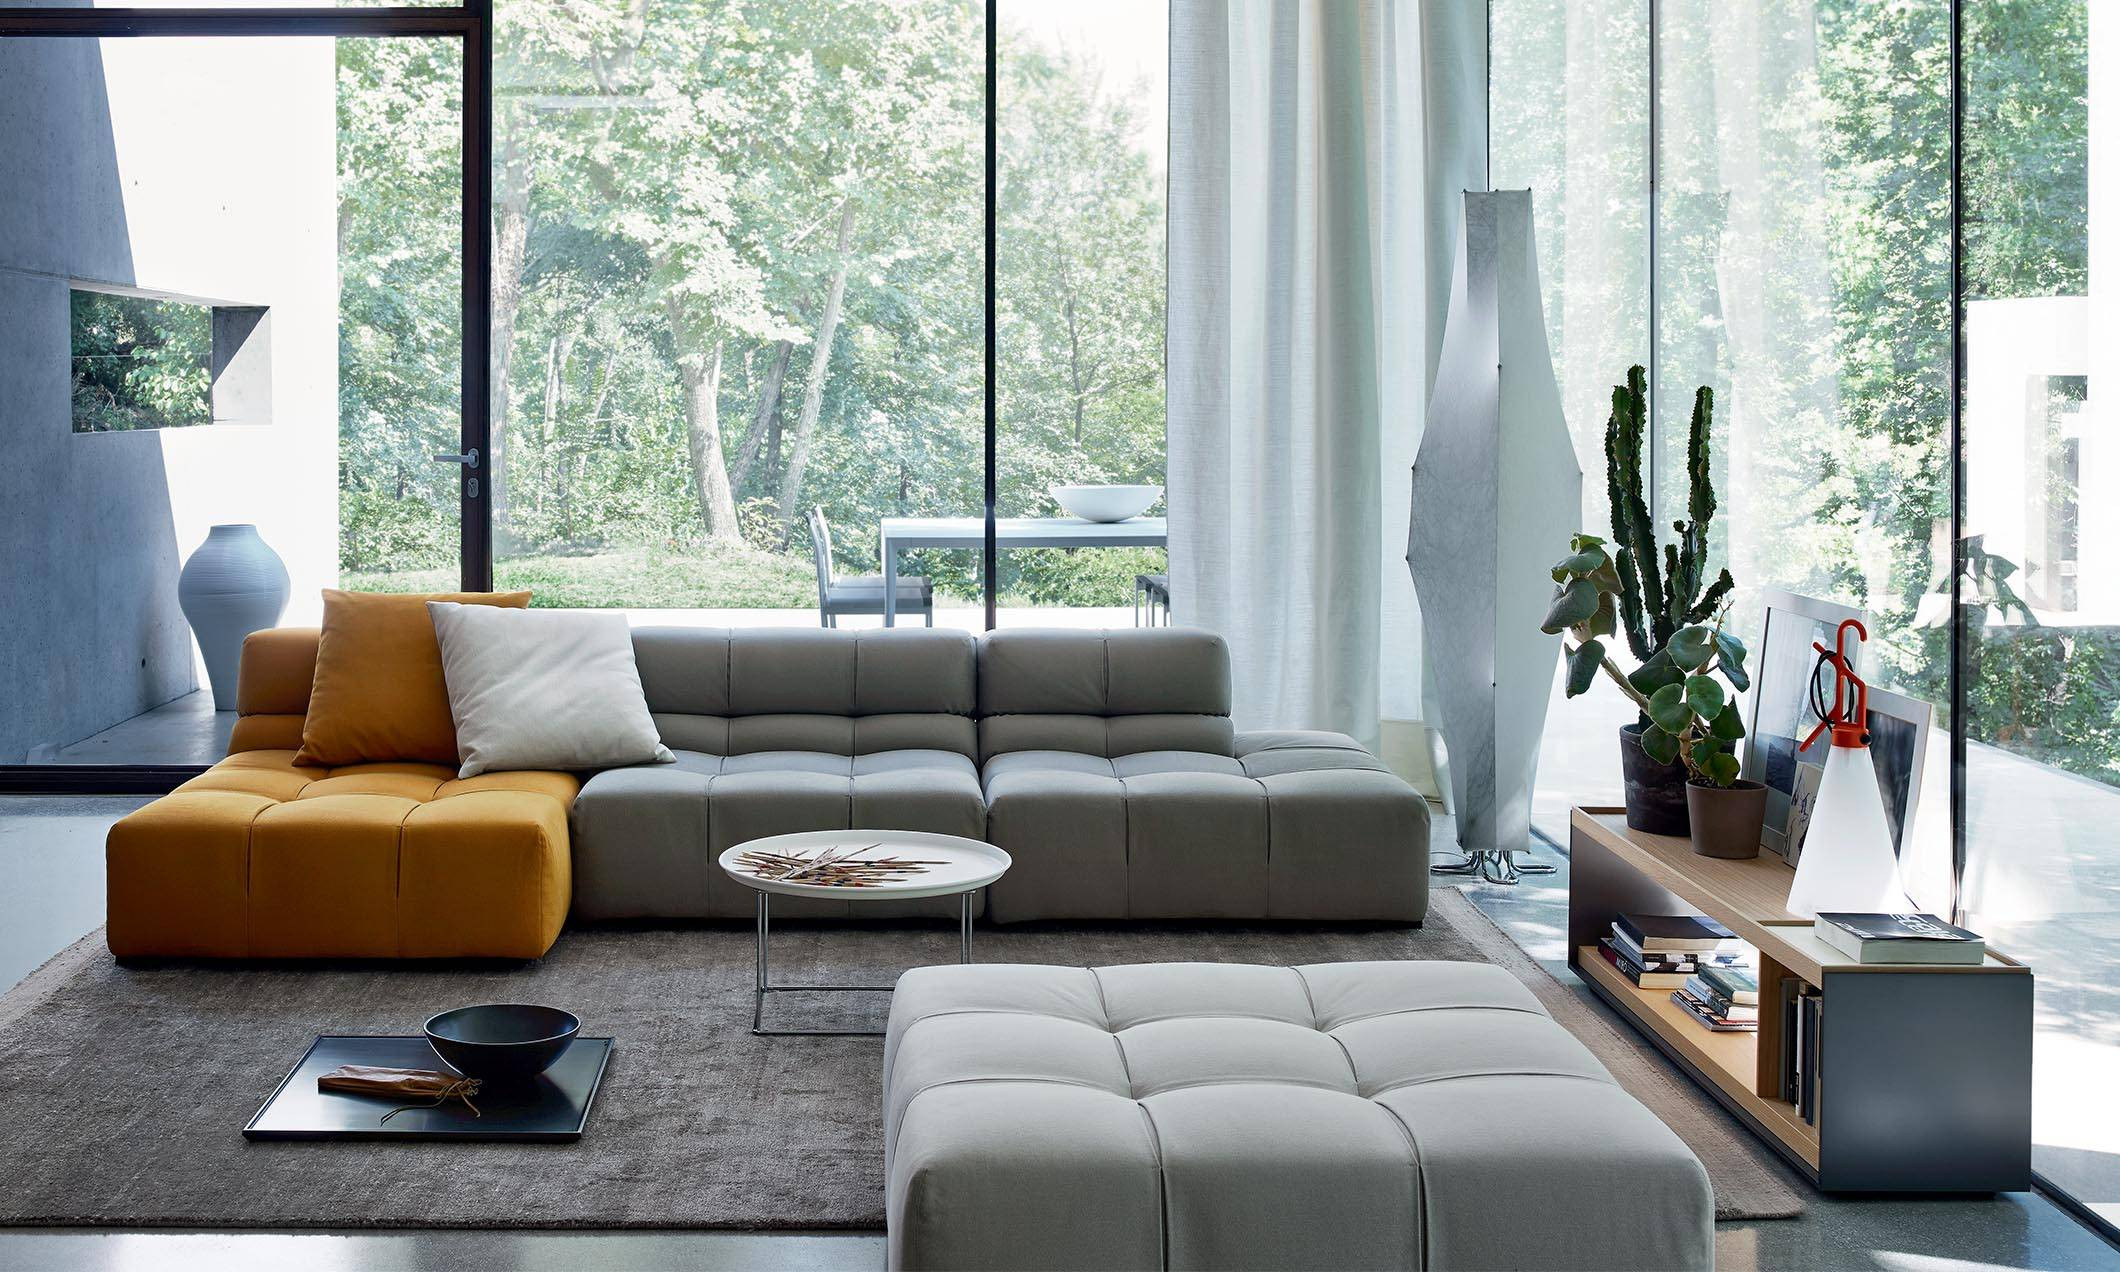 Best ideas about Living Room Couches . Save or Pin Modern Living Room Furniture Design Now.